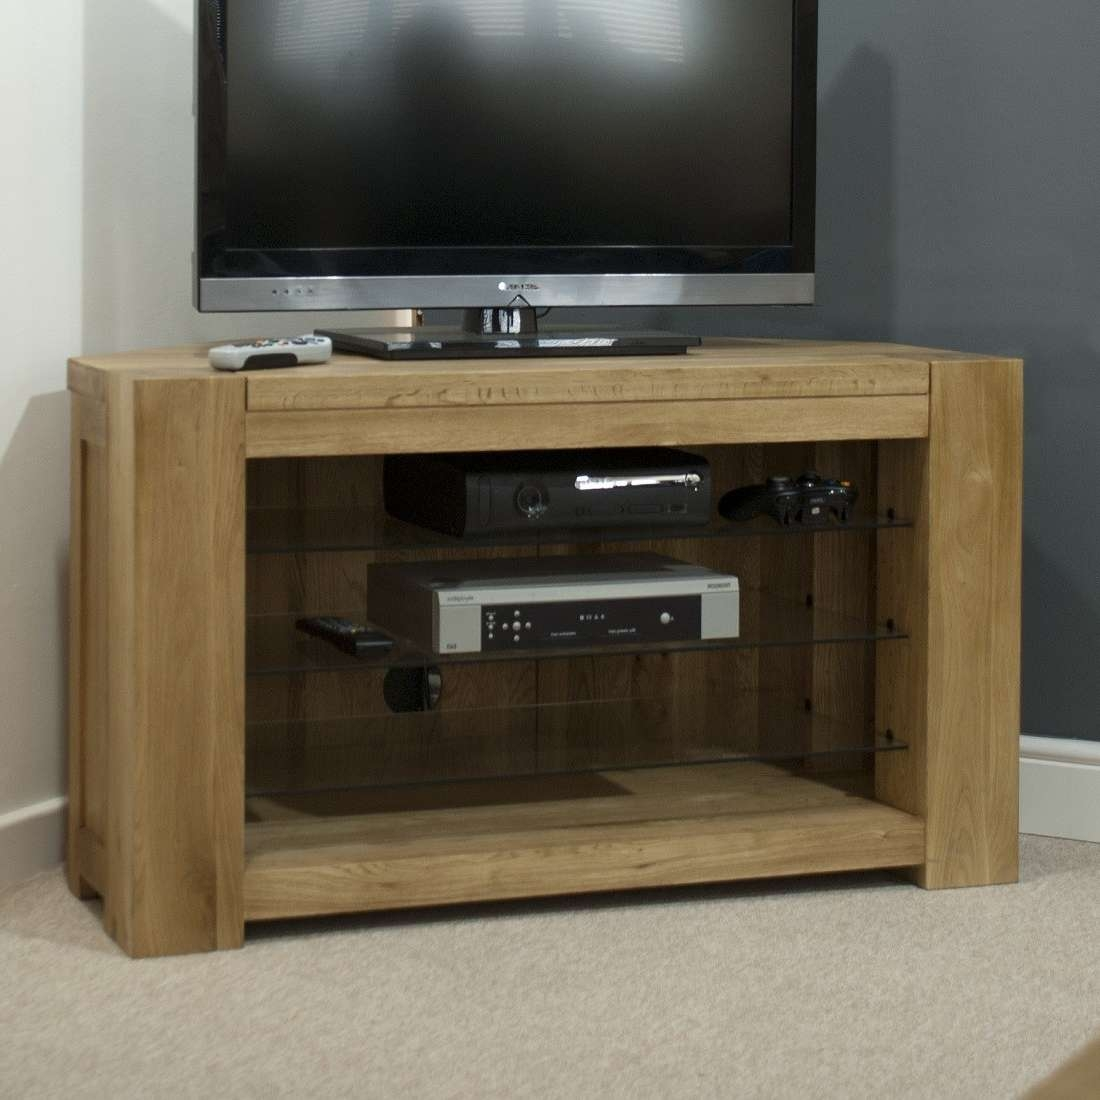 Trend Solid Oak Corner Tv Unit | Oak Furniture Uk For Rustic Oak Tv Stands (View 14 of 15)